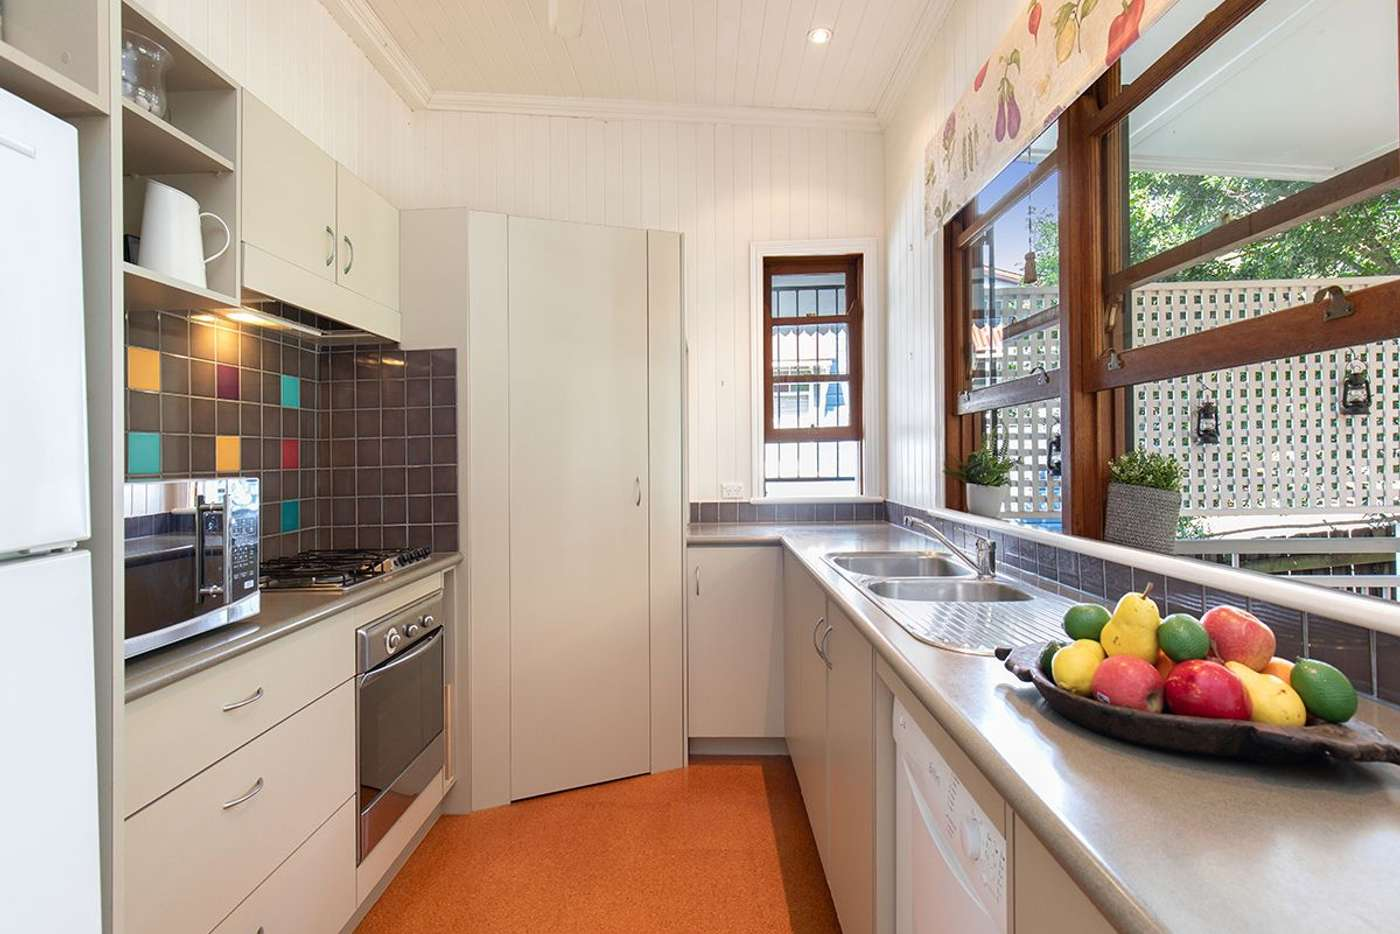 Sixth view of Homely house listing, 18 Morley Street, Toowong QLD 4066